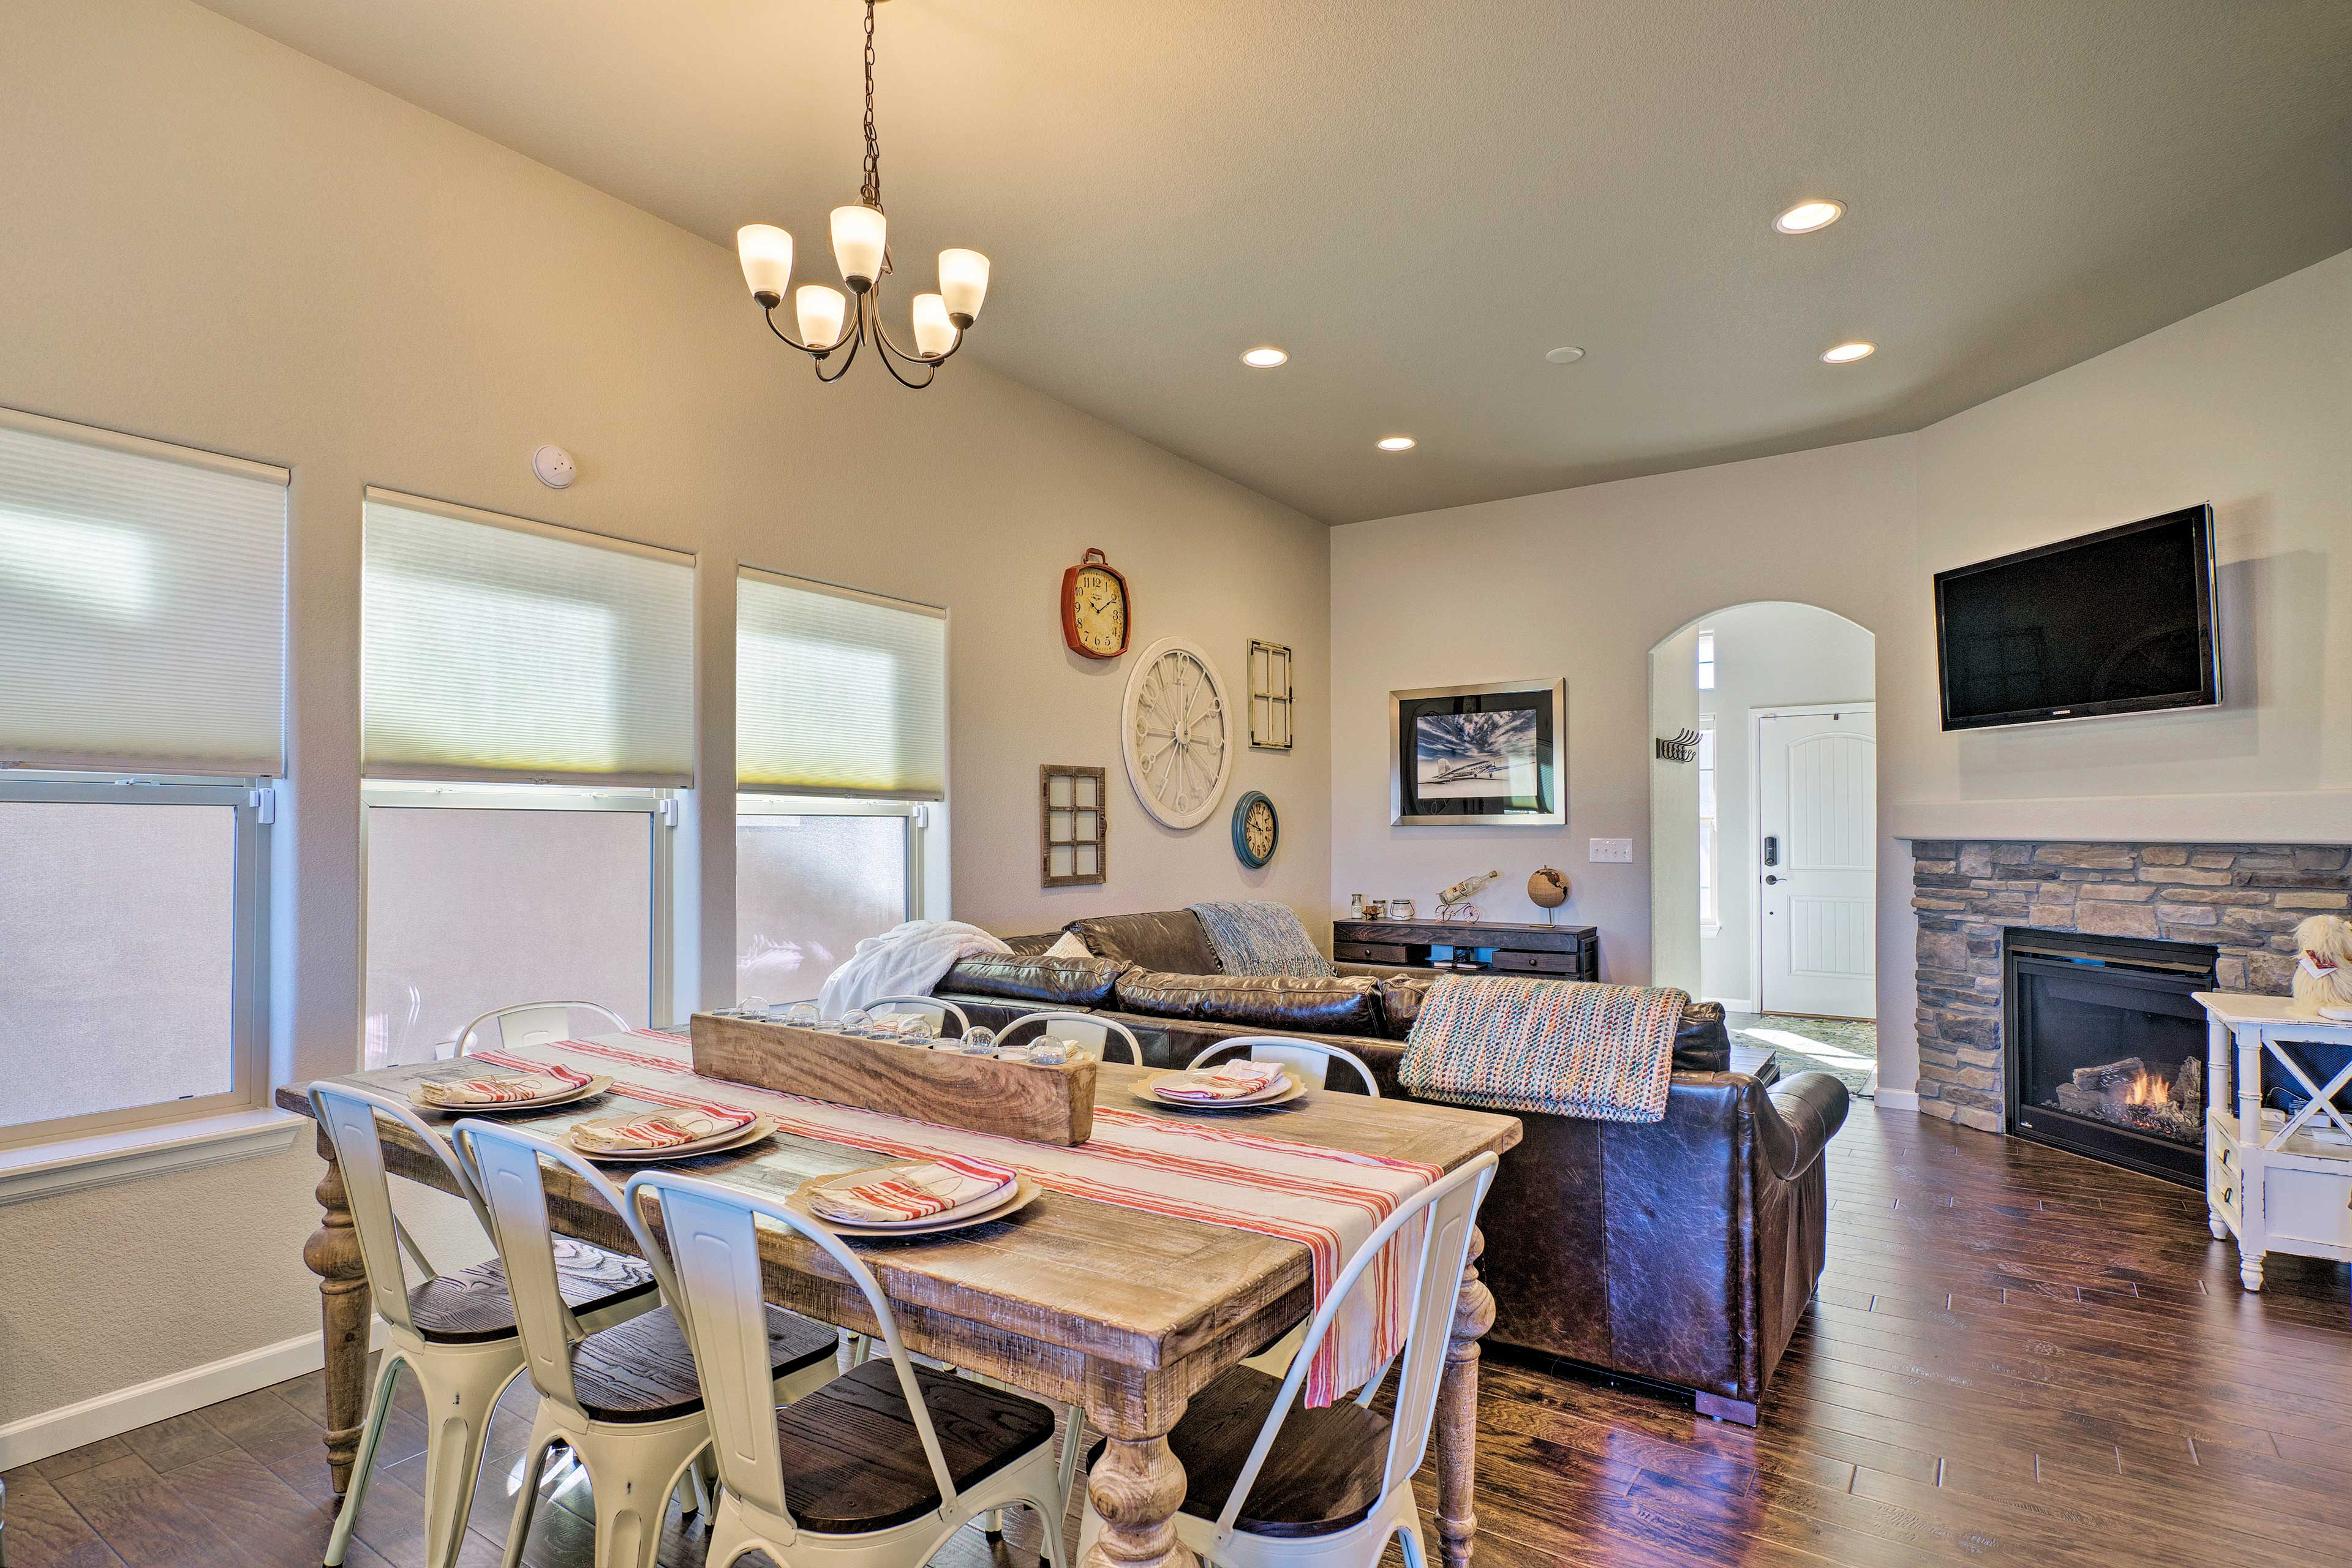 The open-concept space flows right into the dining and kitchen areas.